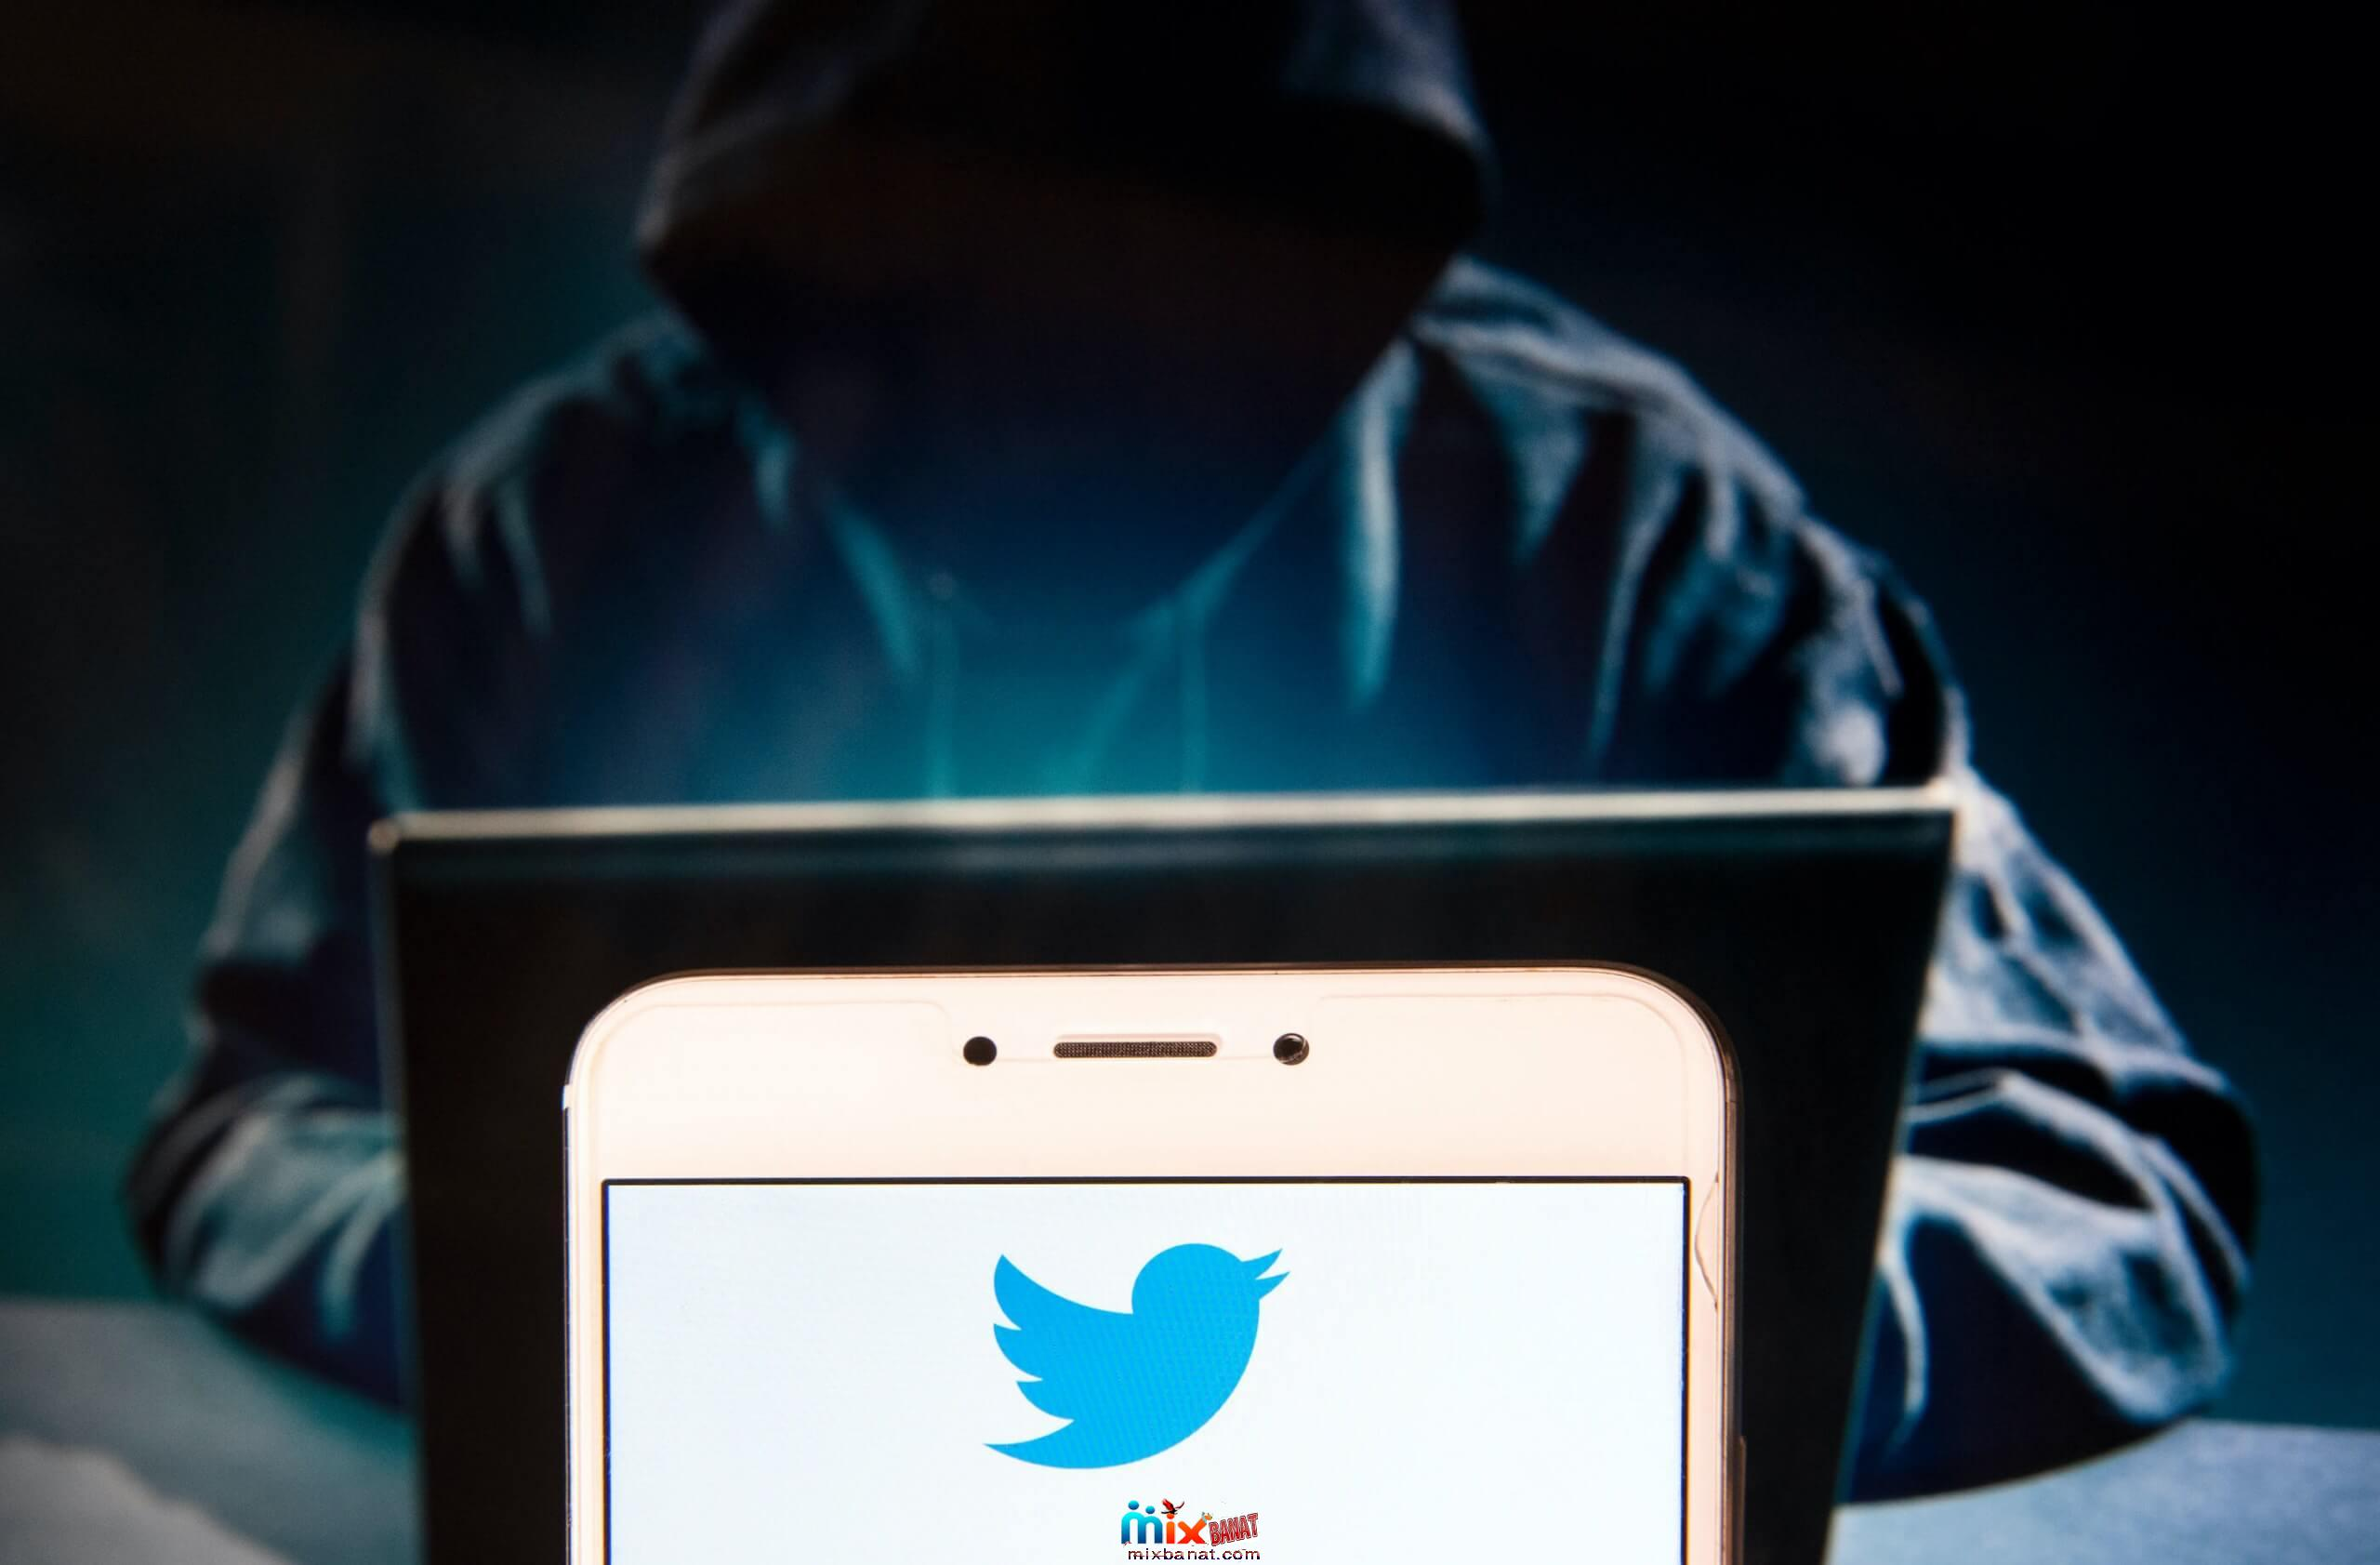 Another person arrested for Twitter hack that hijacked high-profile accounts, including Obama